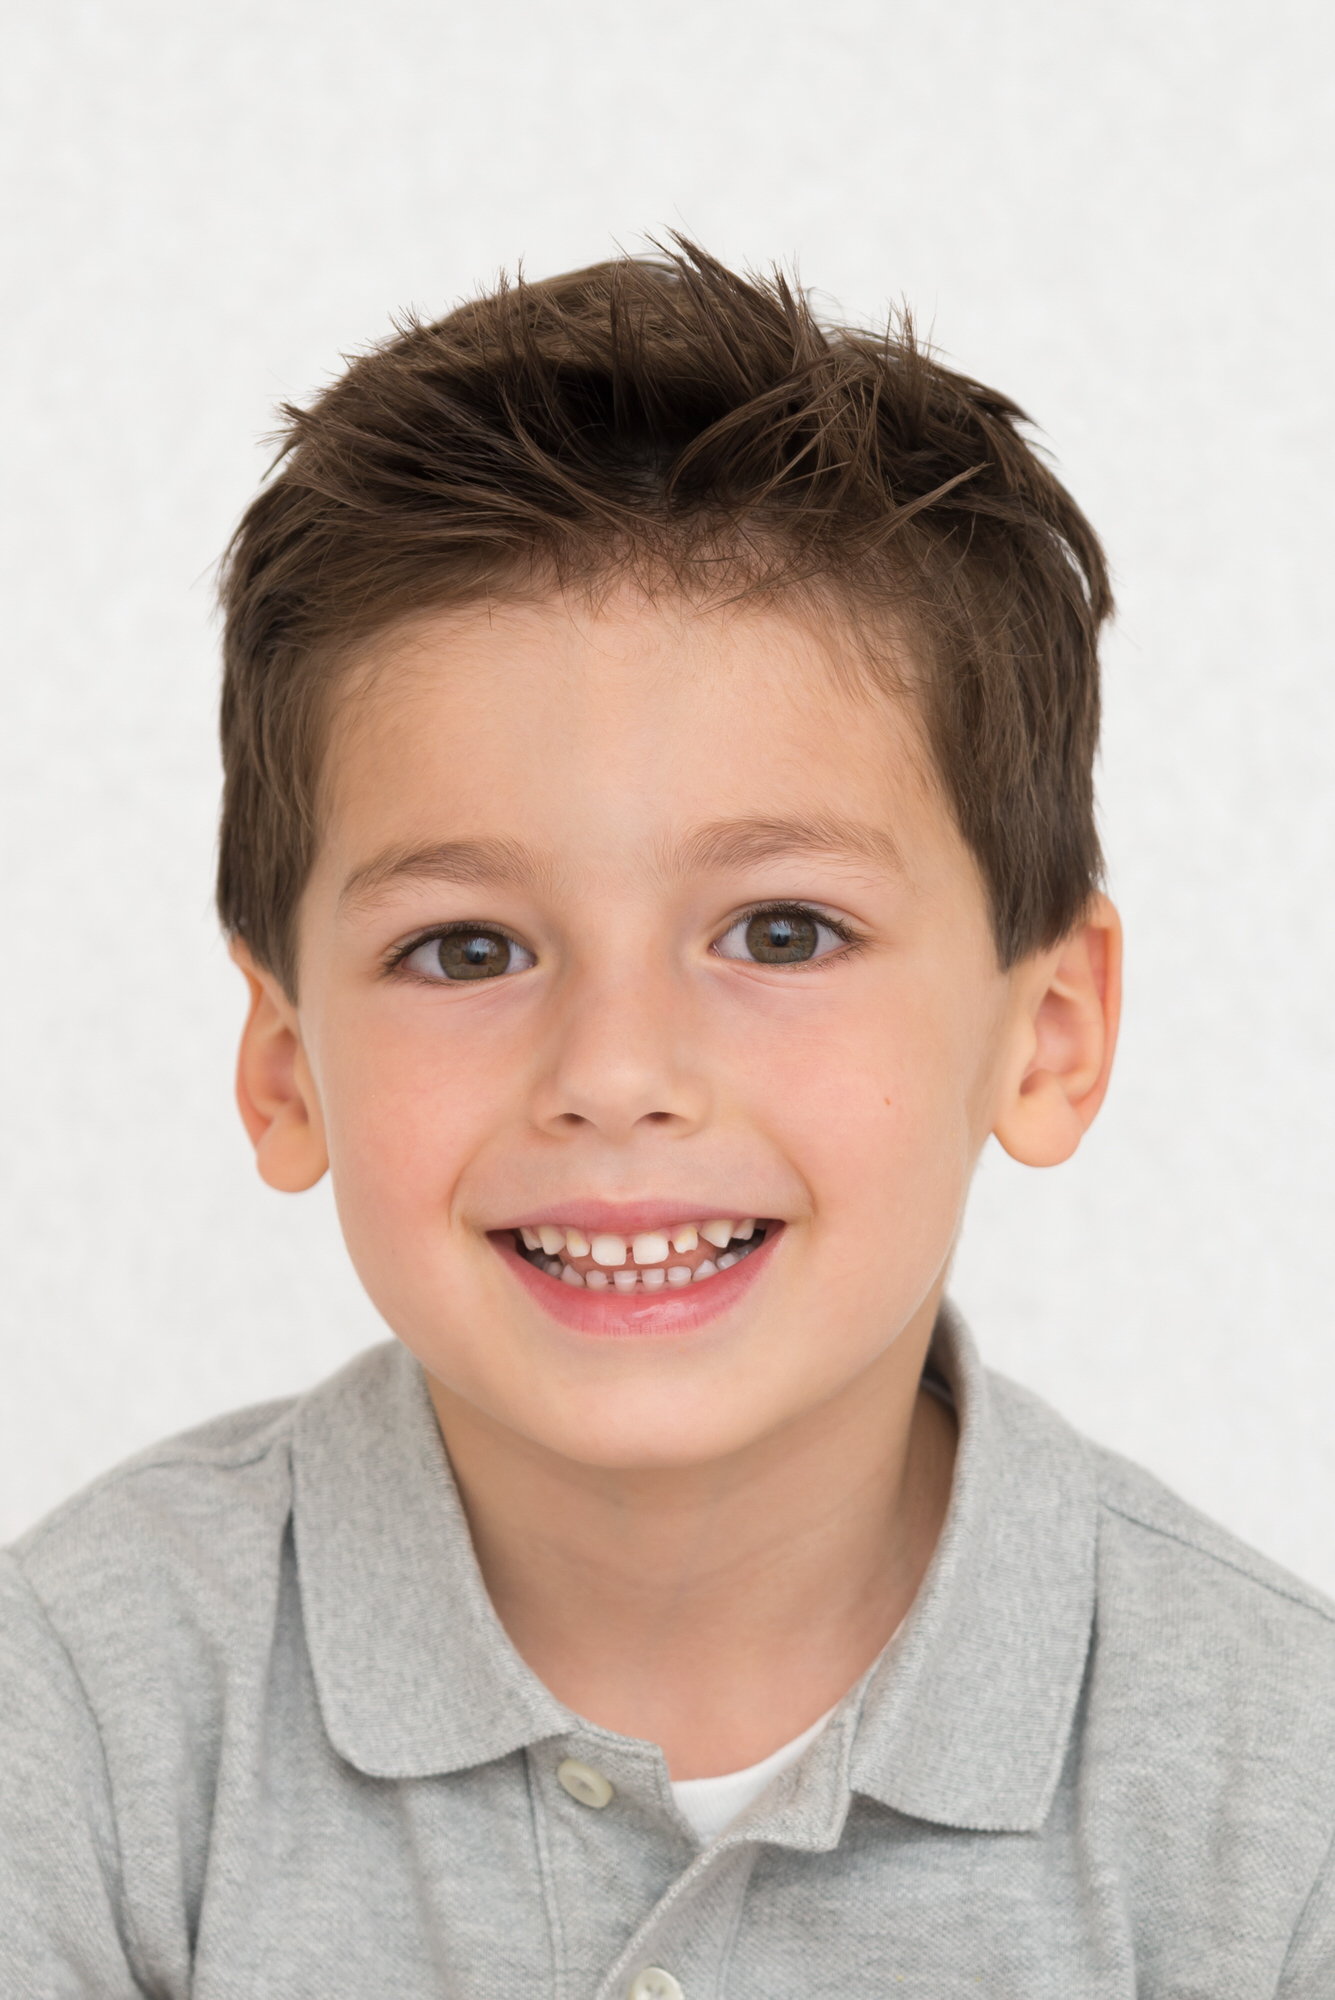 Photo of smiling child in Balham, South London